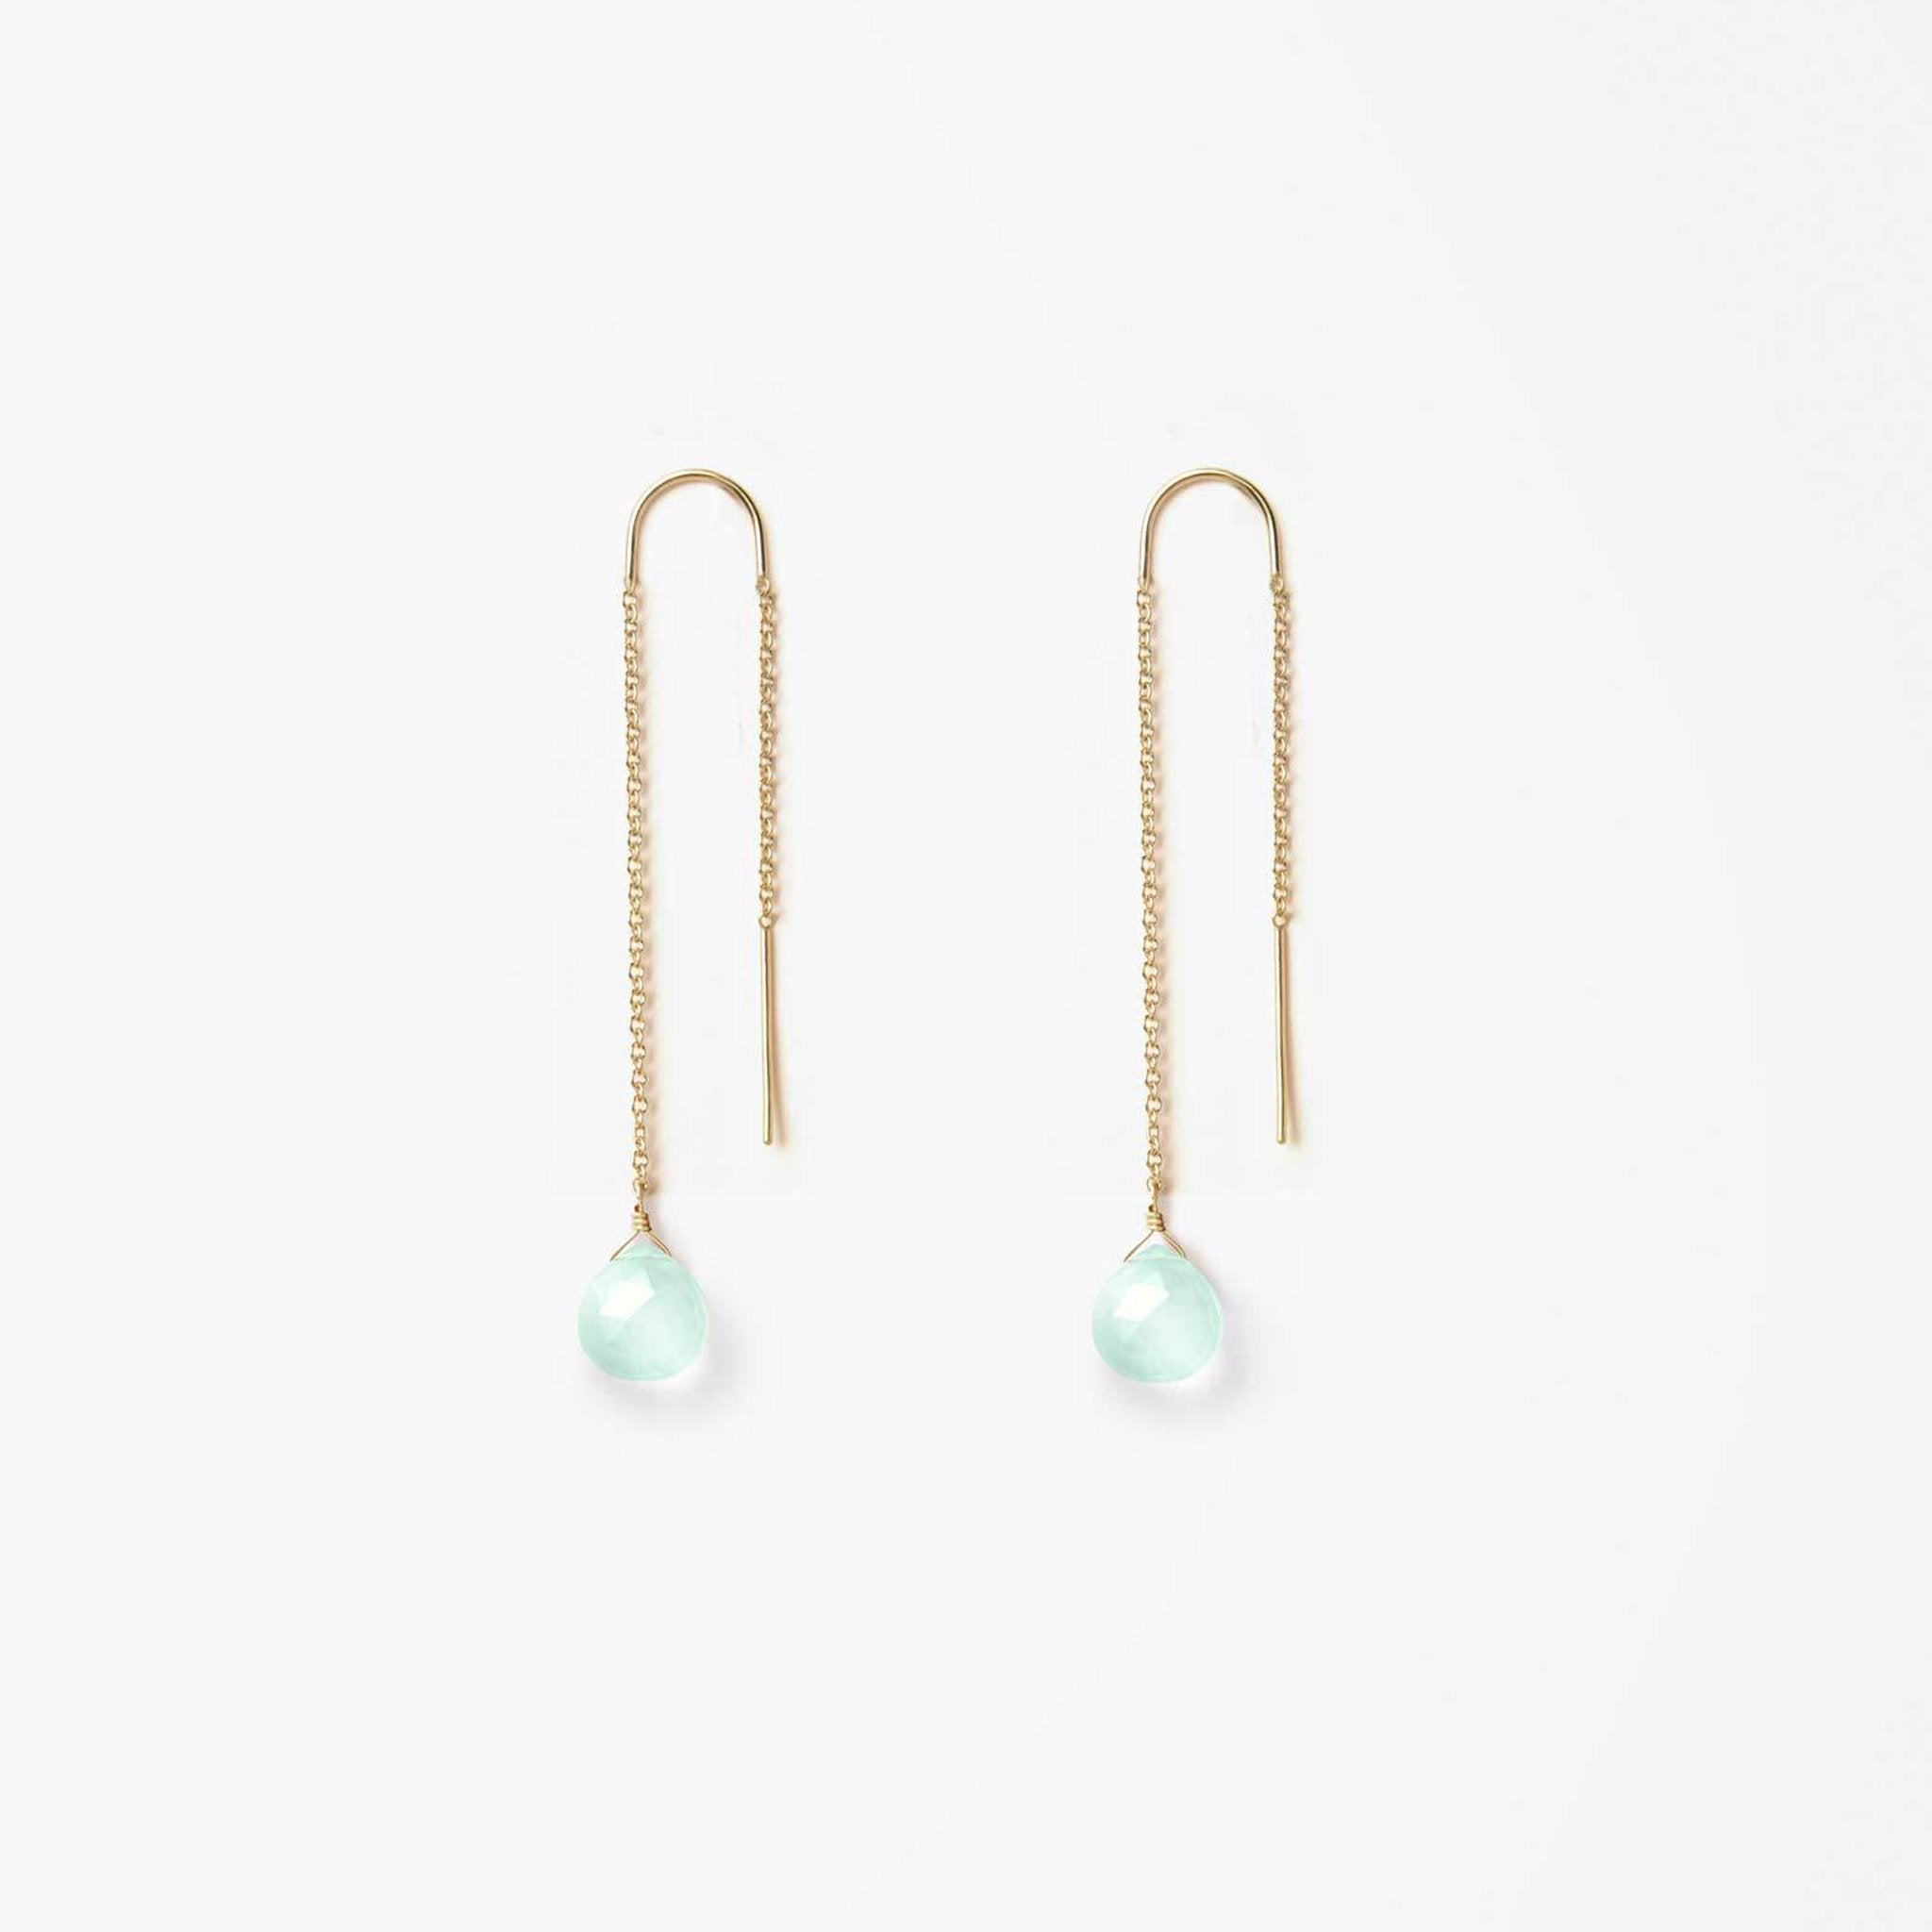 Wanderlust Life Ethically Handmade jewellery made in the UK. Minimalist gold and fine cord jewellery. waterfall earring, sea glass chalcedony